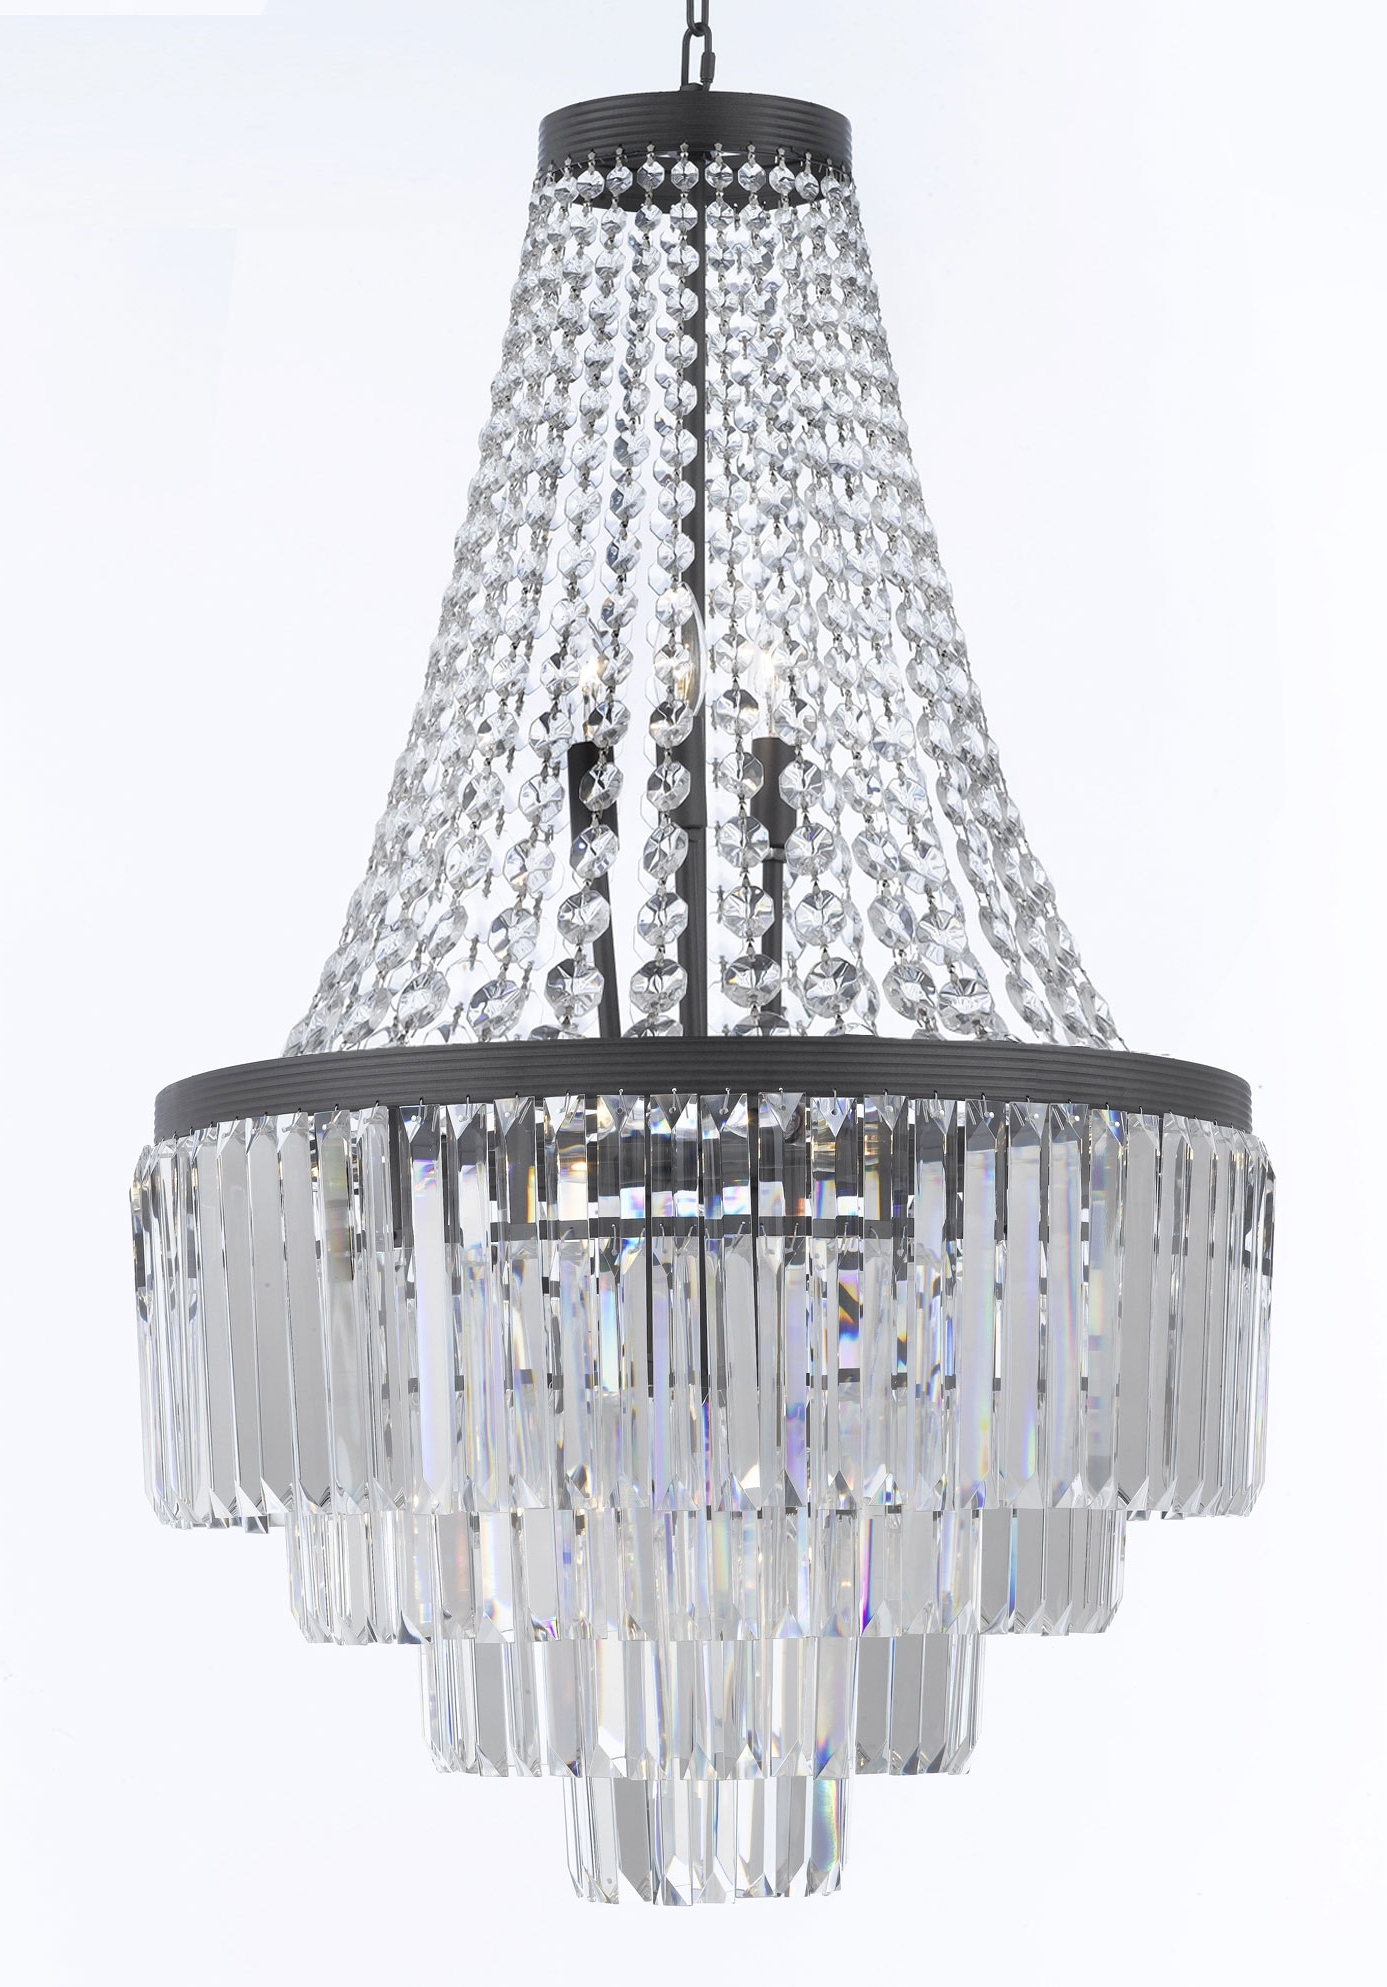 Preferred 3 Tier Crystal Chandelier Intended For G7 1100/9 Gallery Chandeliers Retro Odeon Crystal Glass Fringe (View 5 of 20)